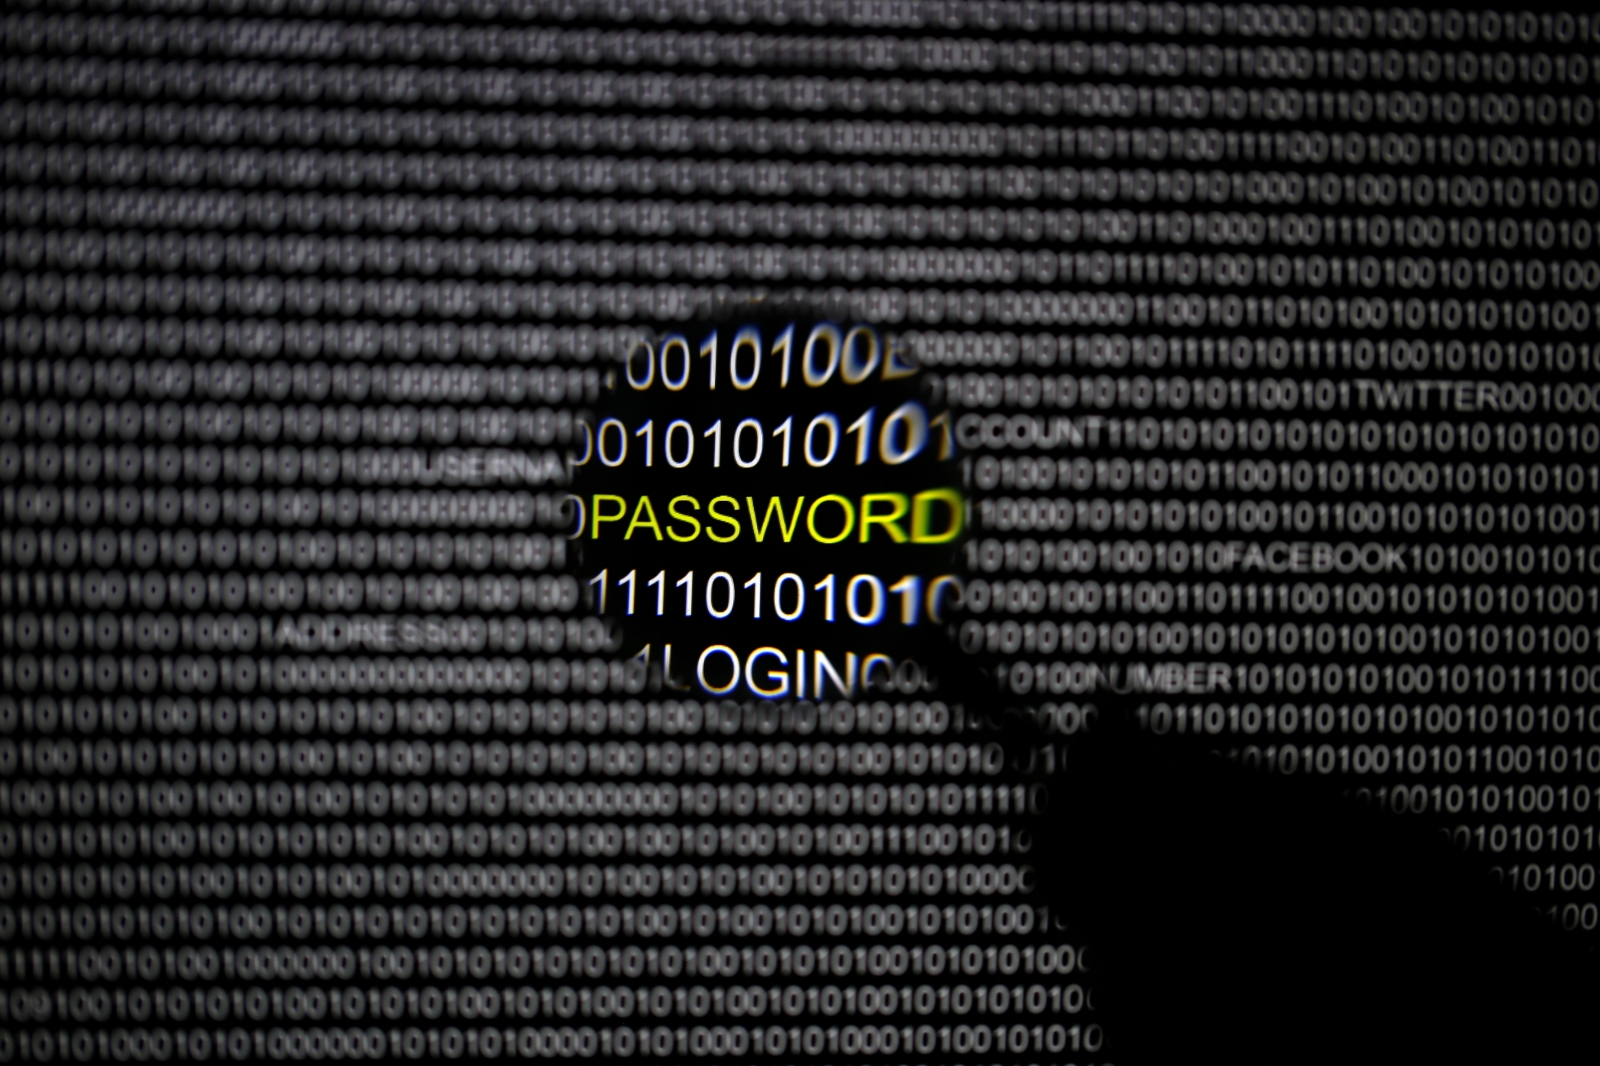 US data breach and Chinese hackers